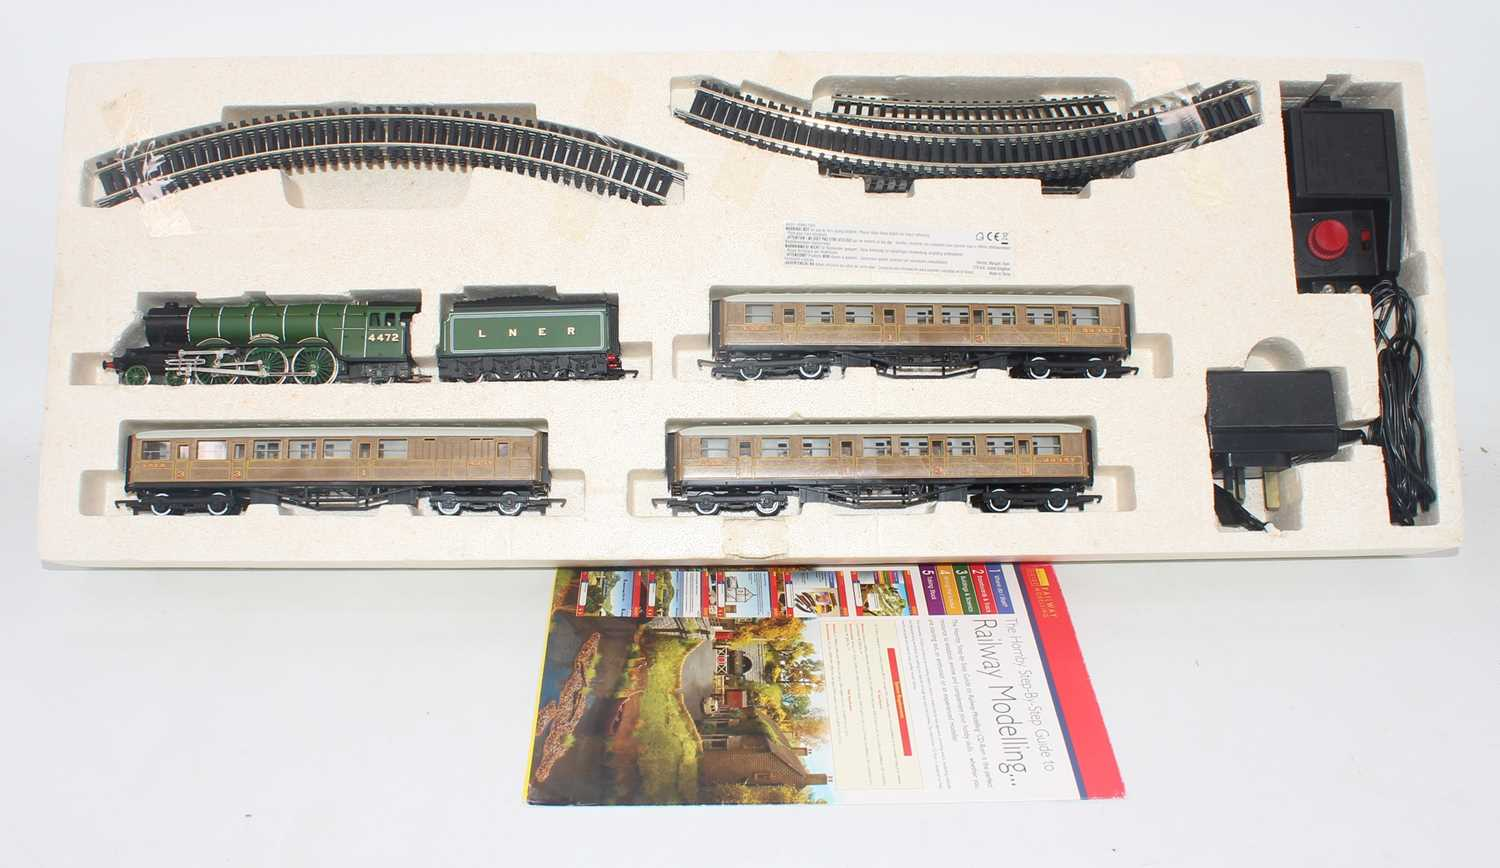 A Hornby Railways Flying Scotsman electric train set, comprising of locomotive, carriages, track - Image 2 of 2